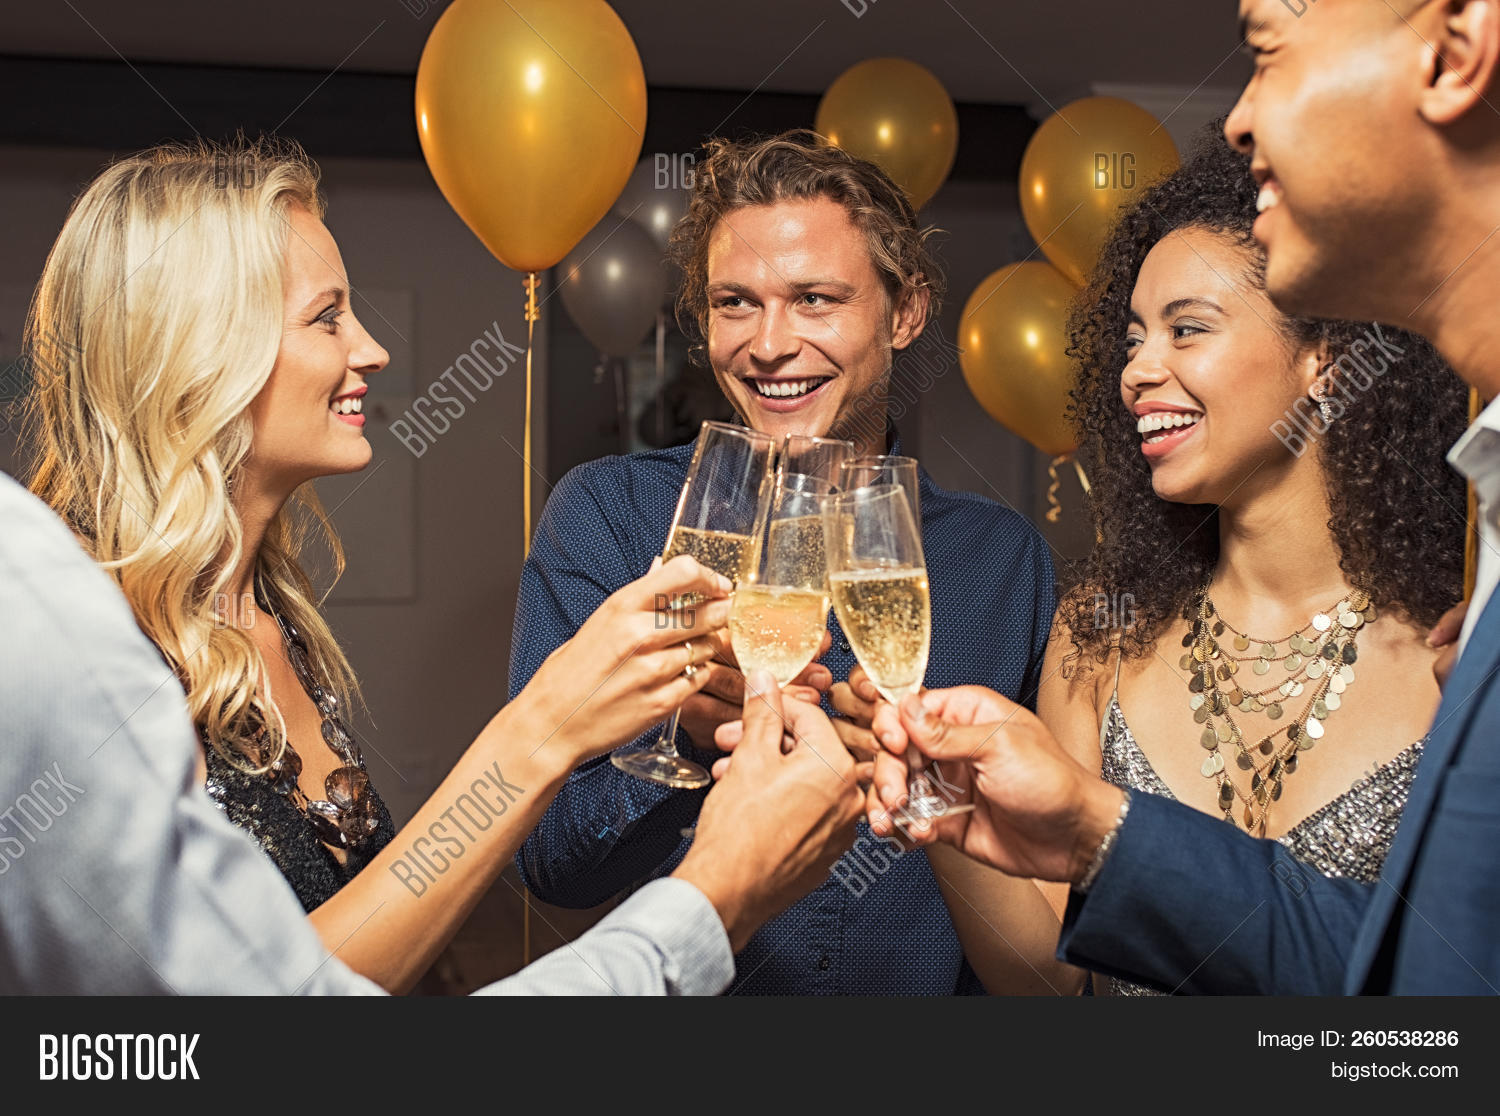 Group of young multiethnic friends toasting with champagne flutes to celebrate new year. Happy guys